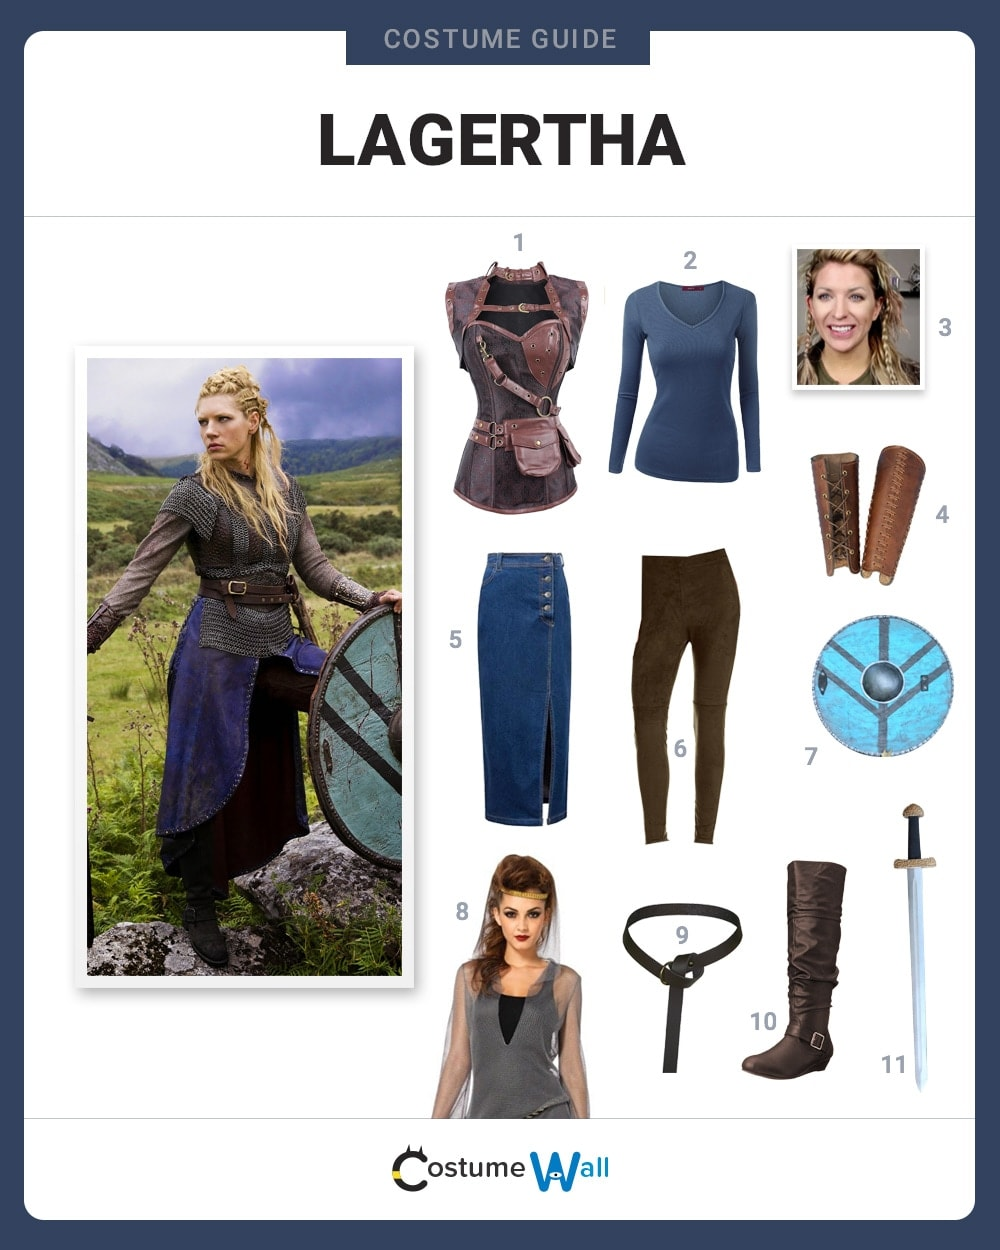 lagertha costume pattern-#27